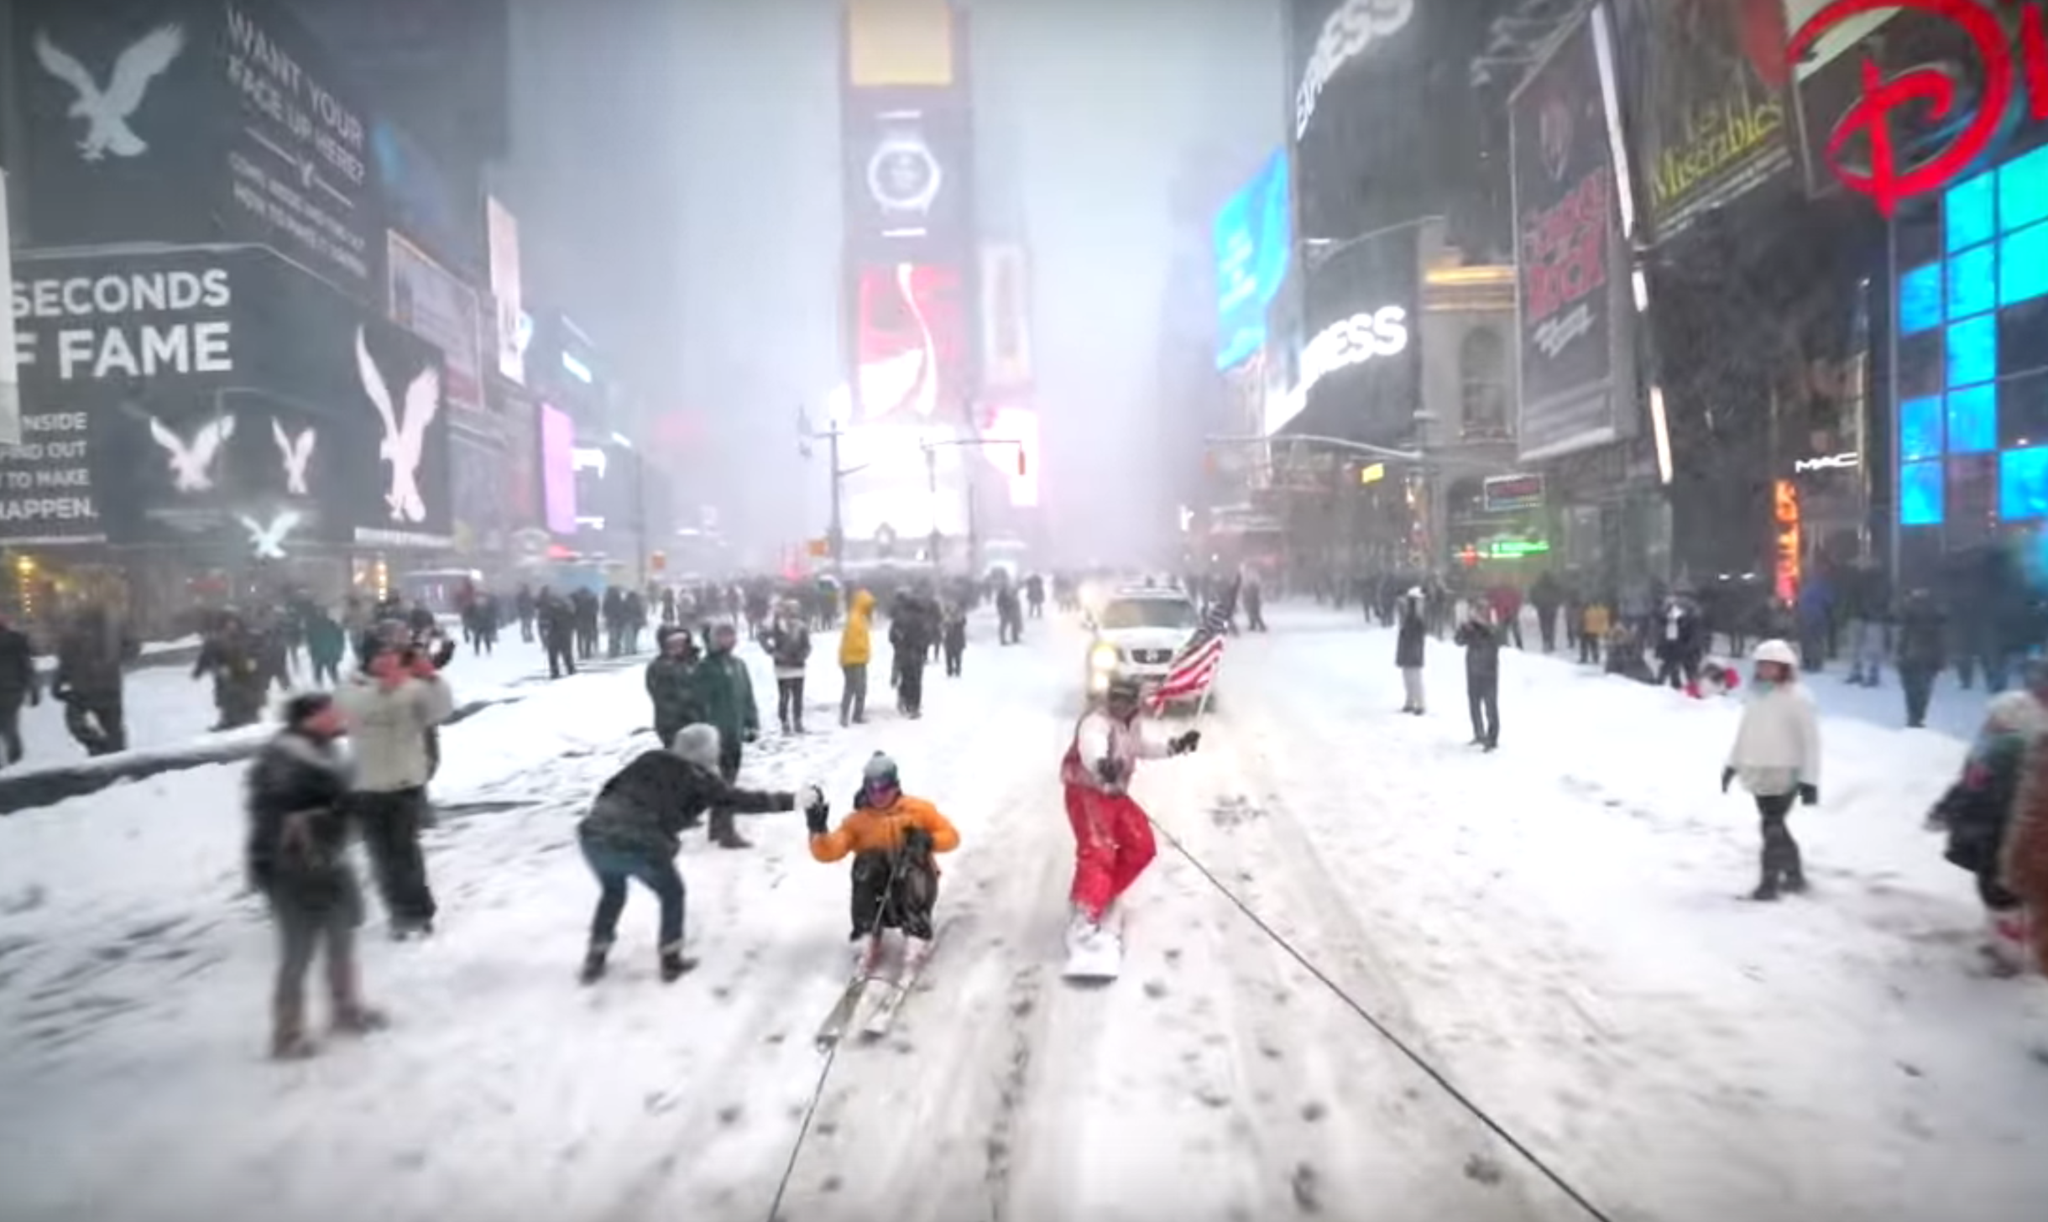 Snowboarding on the streets of New York City